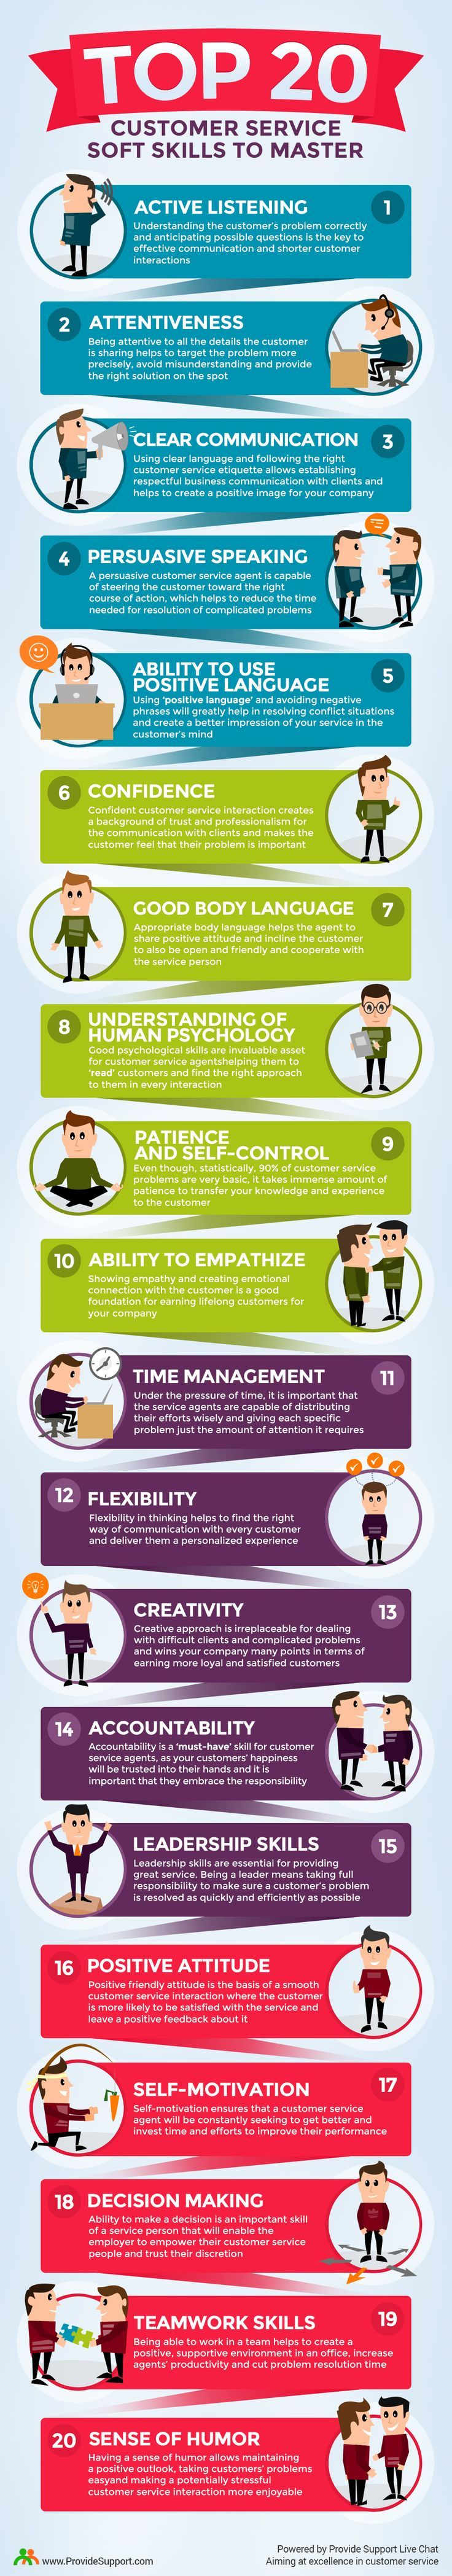 17 best images about employability skills for career readiness on 17 best images about employability skills for career readiness personality types technology and personal branding